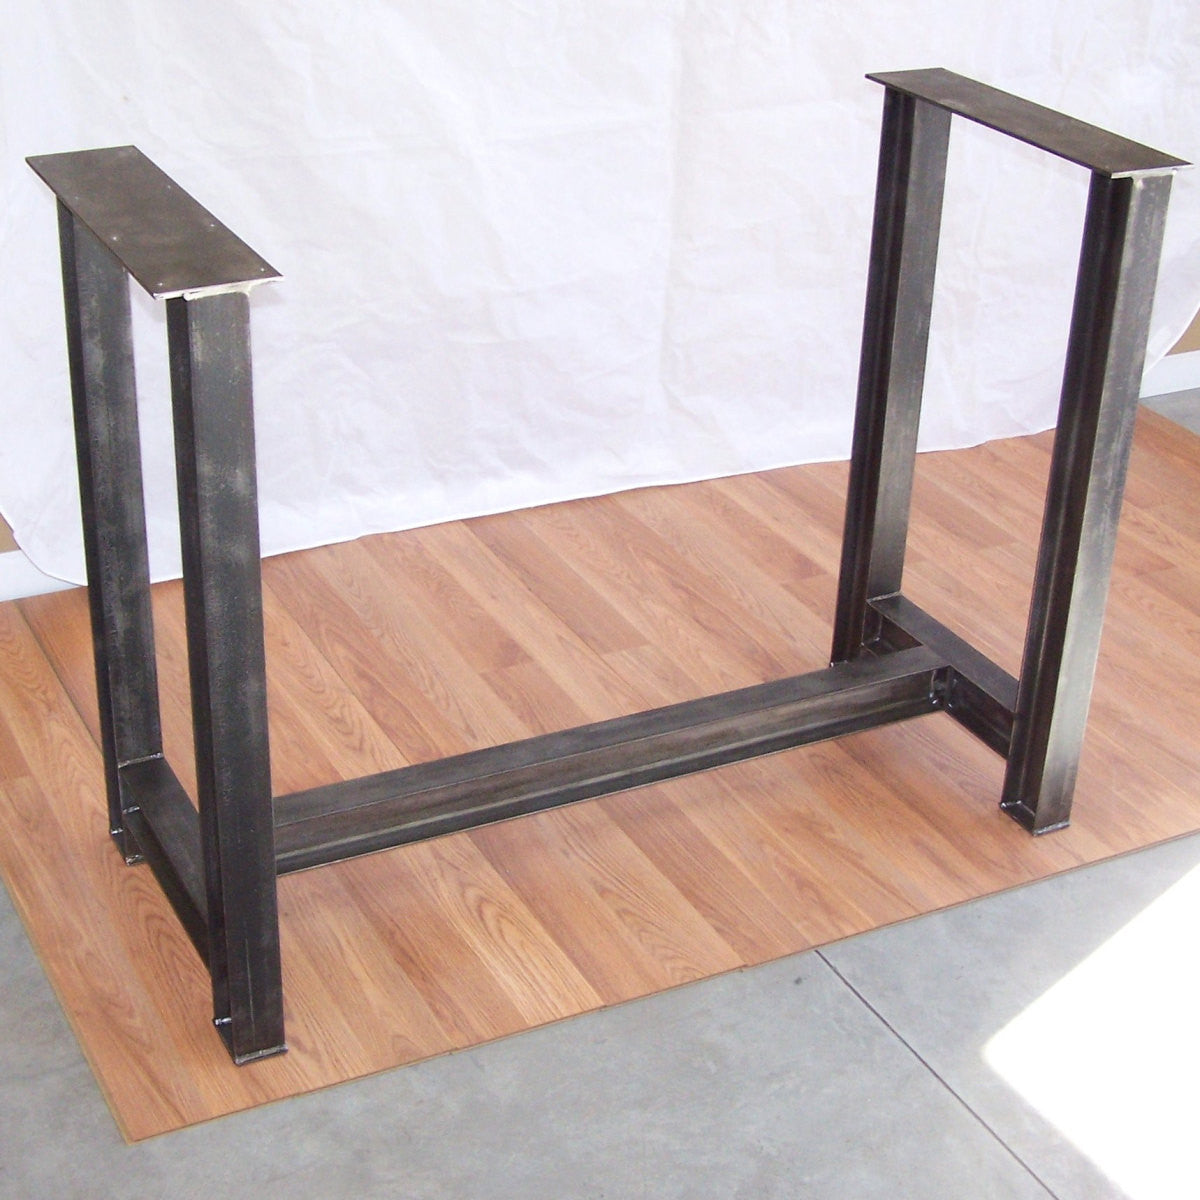 urban tri urbanironcraft by table leg made legs metal desk custom custommade com ironcraft tribeca